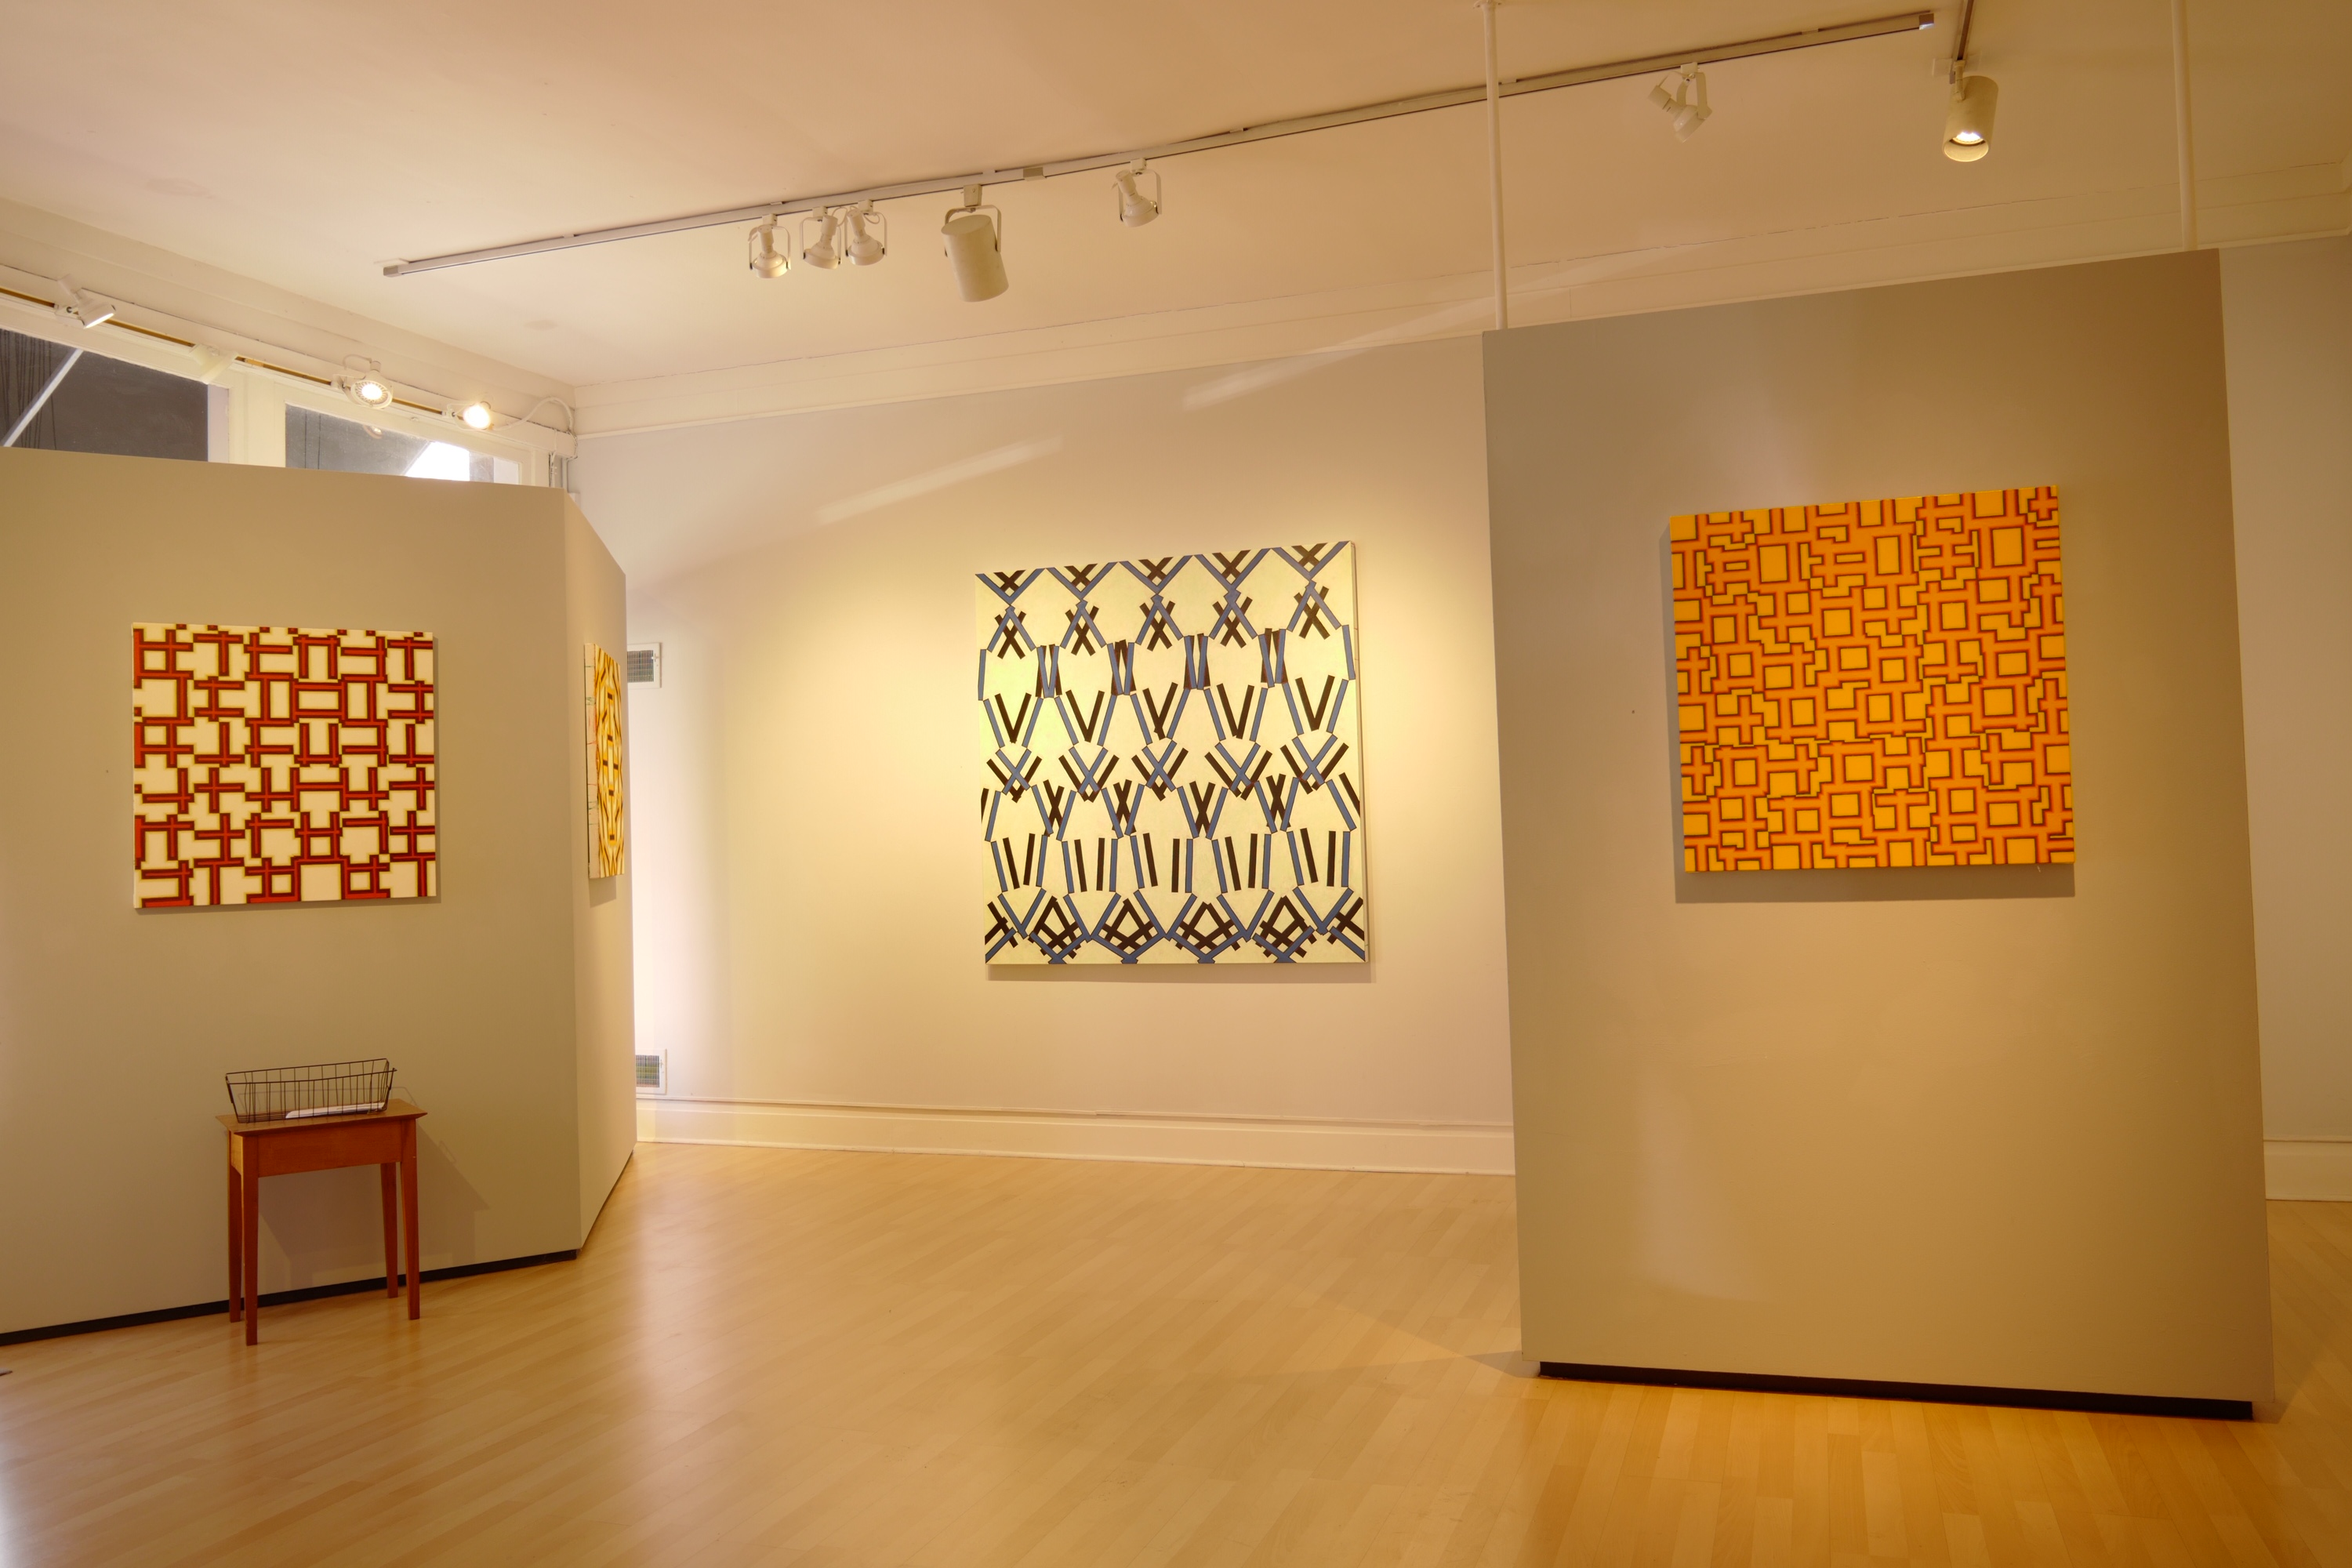 WE ARE THRILLED TO BE ABLE TO WELCOME YOU BACK  INTO THE GALLERY!